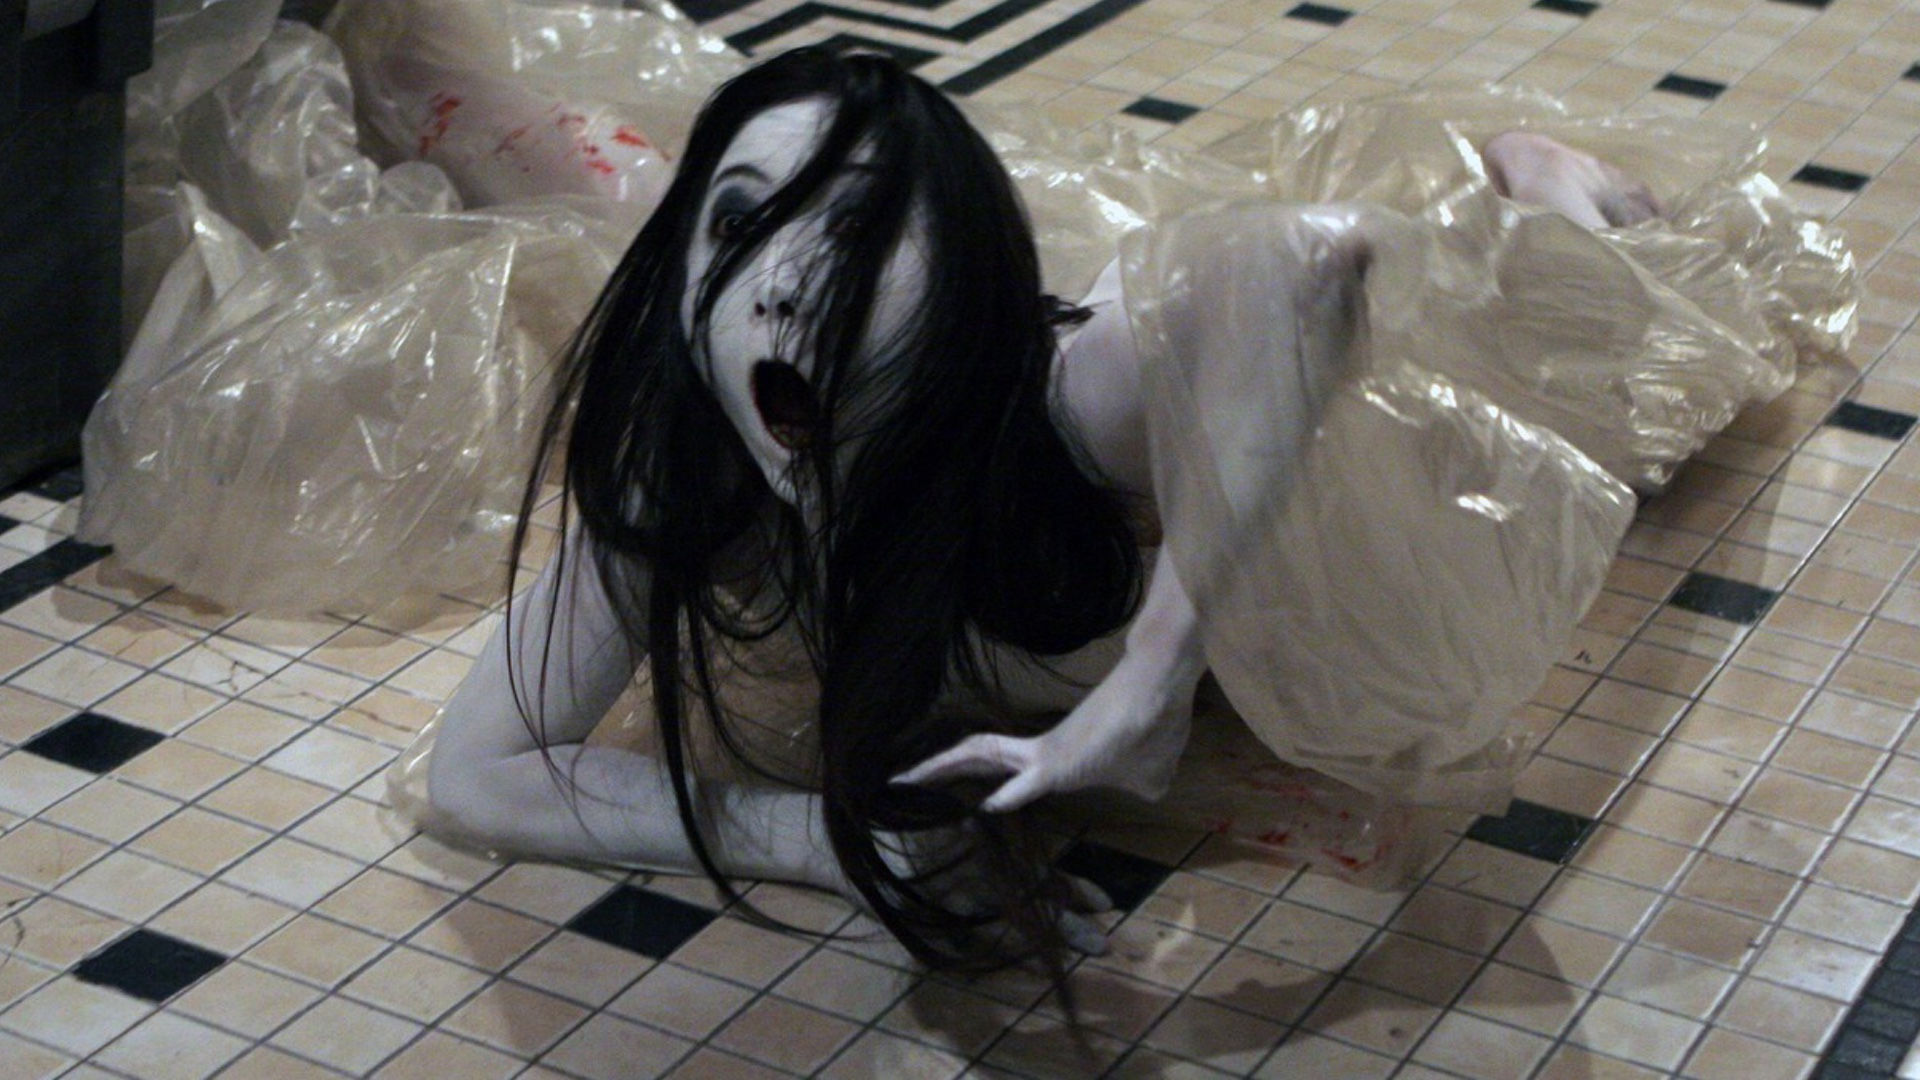 the-grudge-reboot-director-says-the-film-will-be-more-like-david-finchers-seven-social.jpg